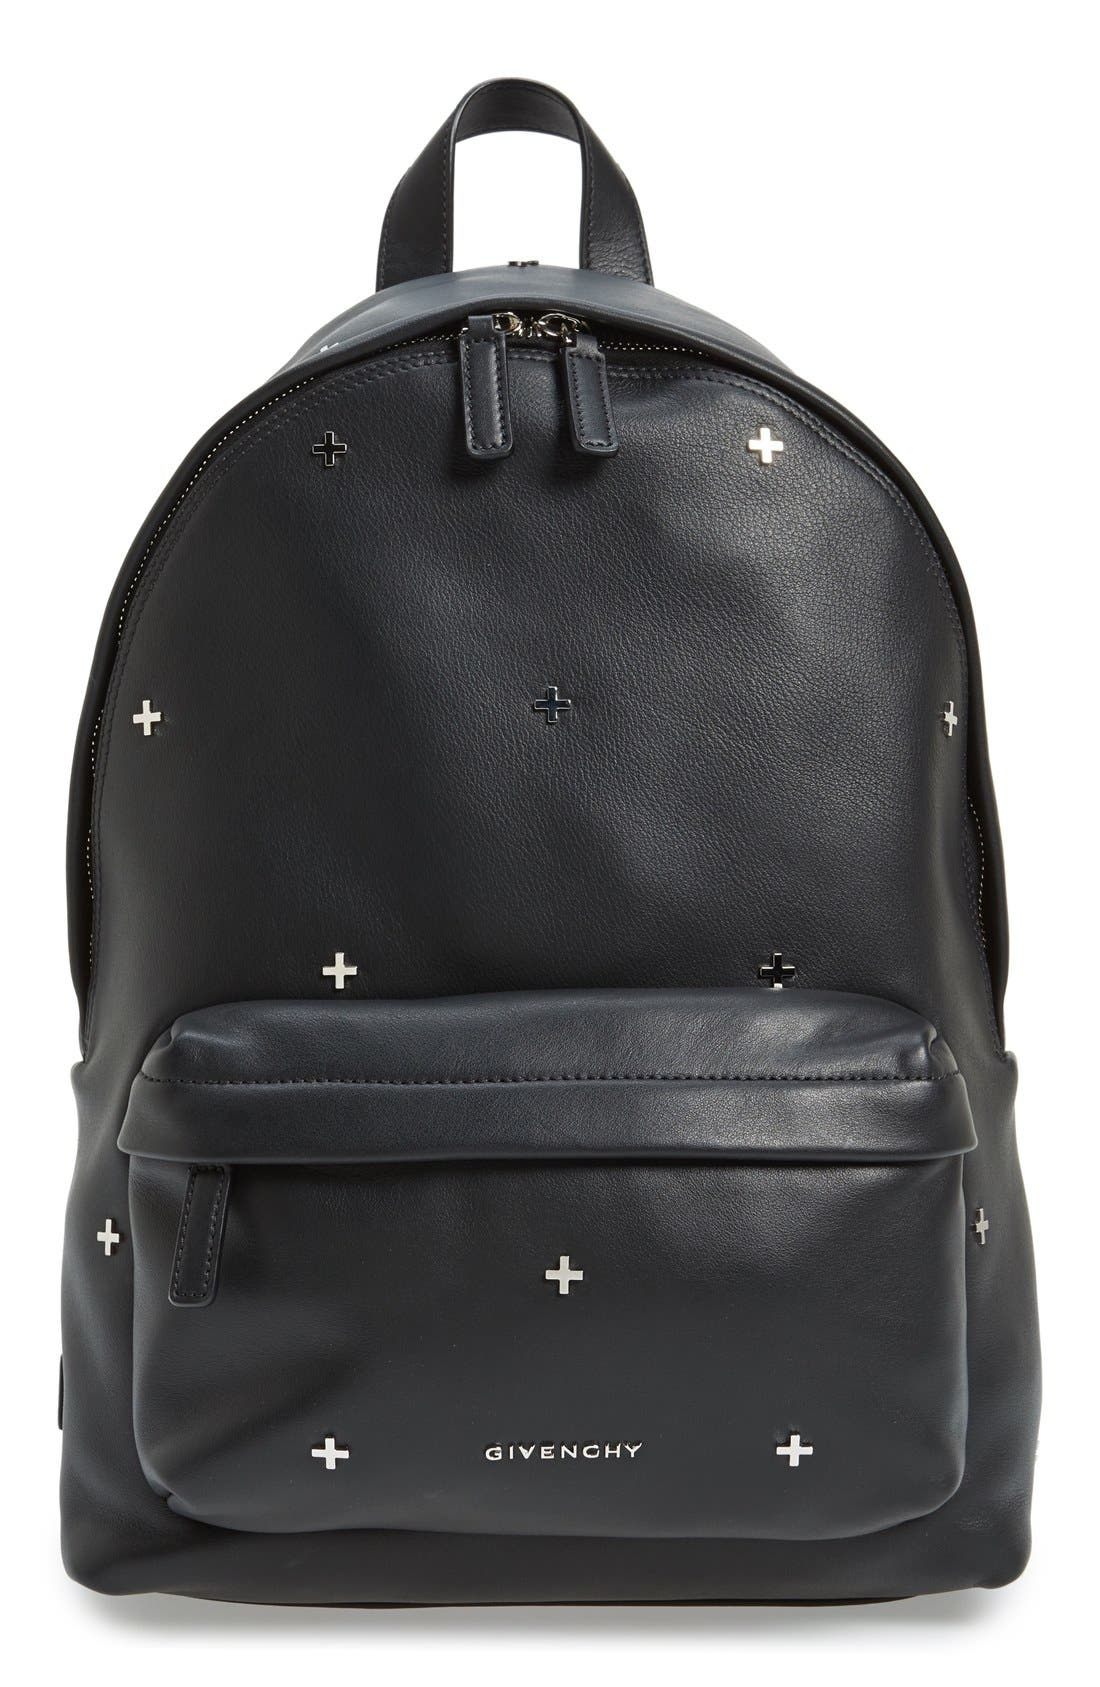 Givenchy Metal Cross Embellished Calfskin Leather Backpack